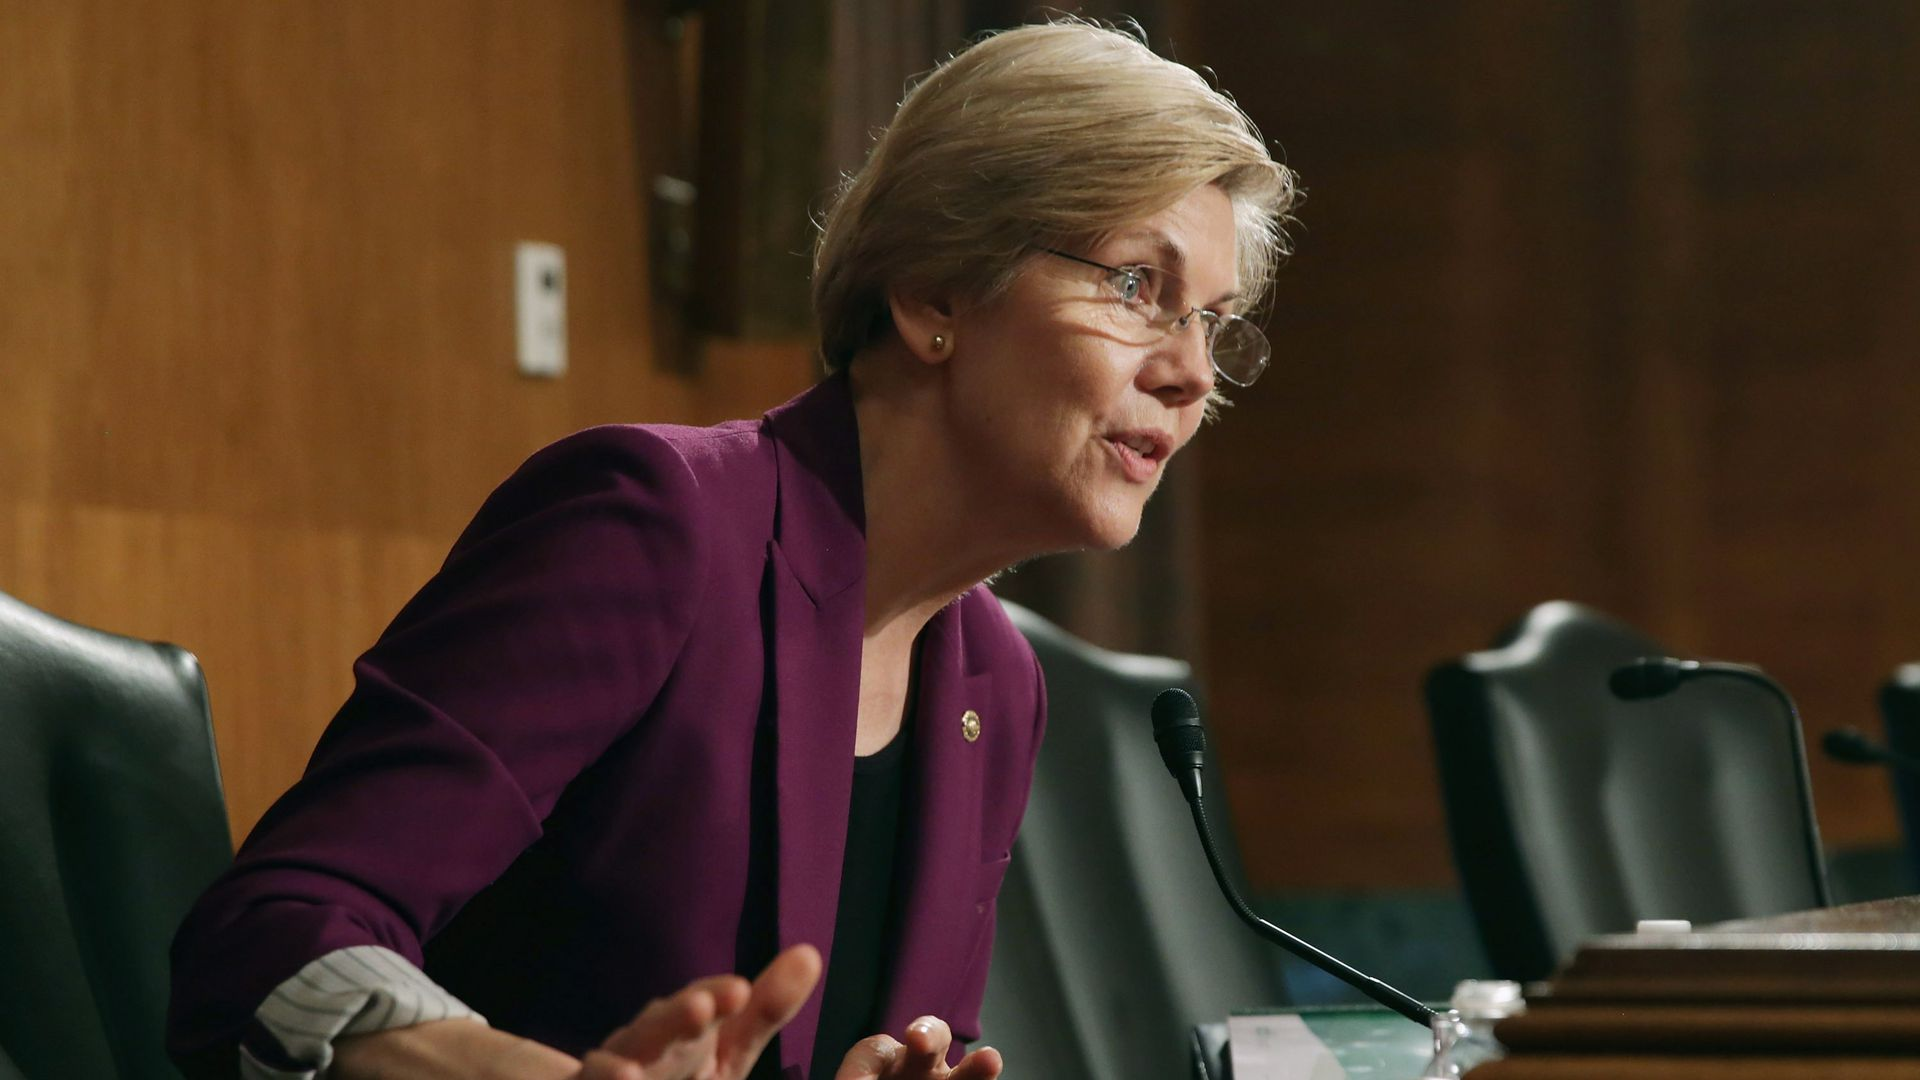 In this image, Elizabeth Warren speaks into a microphone at a committee hearing.